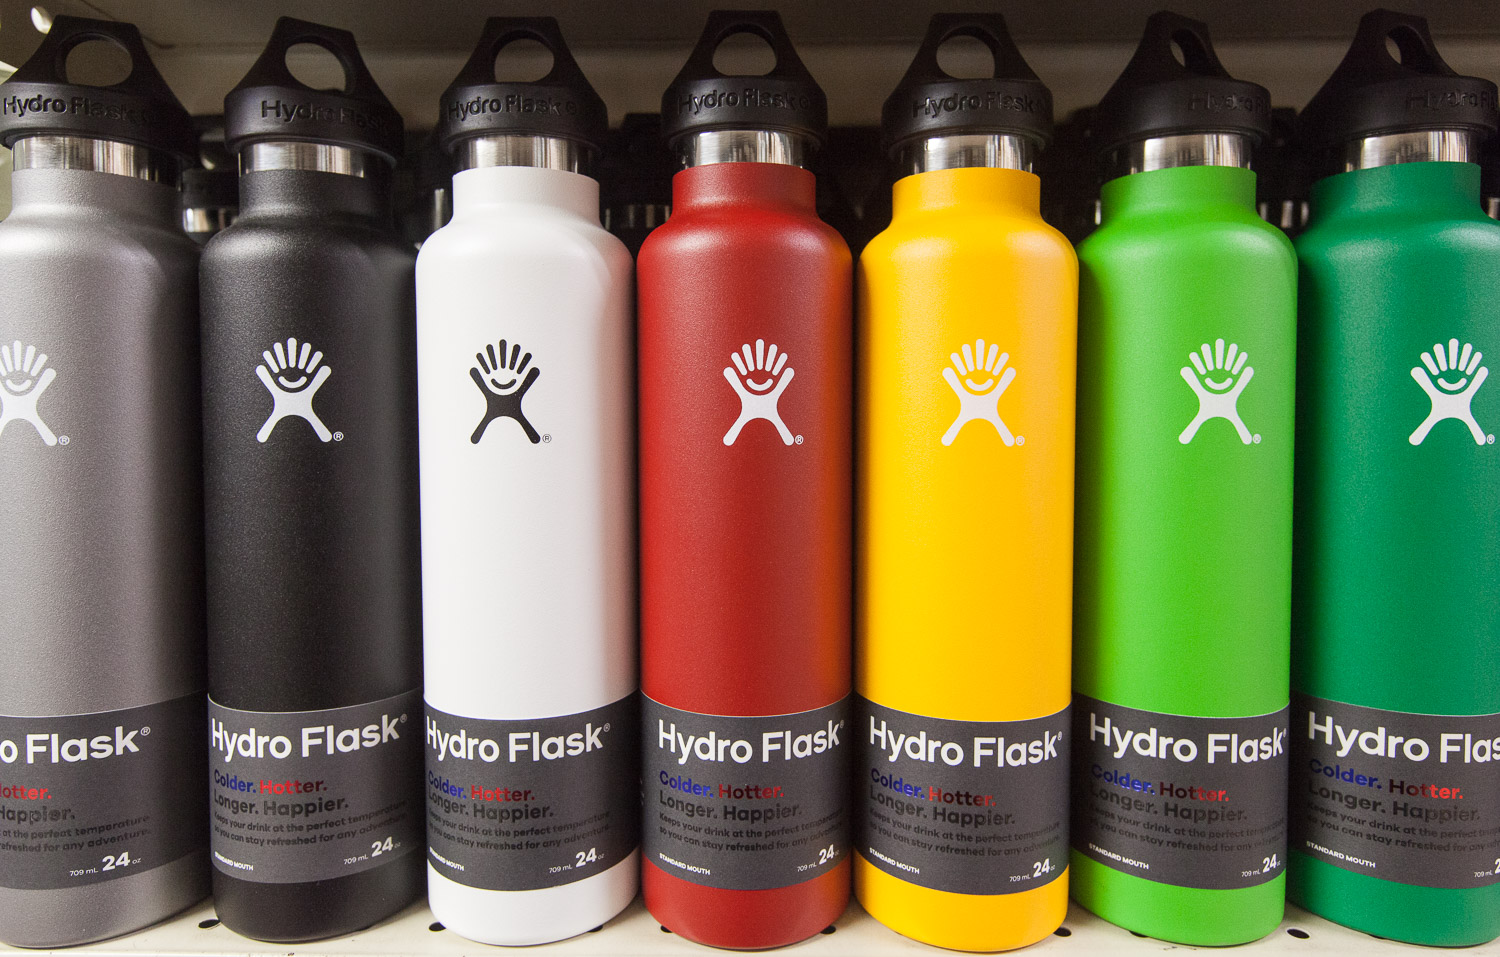 hydro-flasks-mana-foods-gifts-household-department.jpg